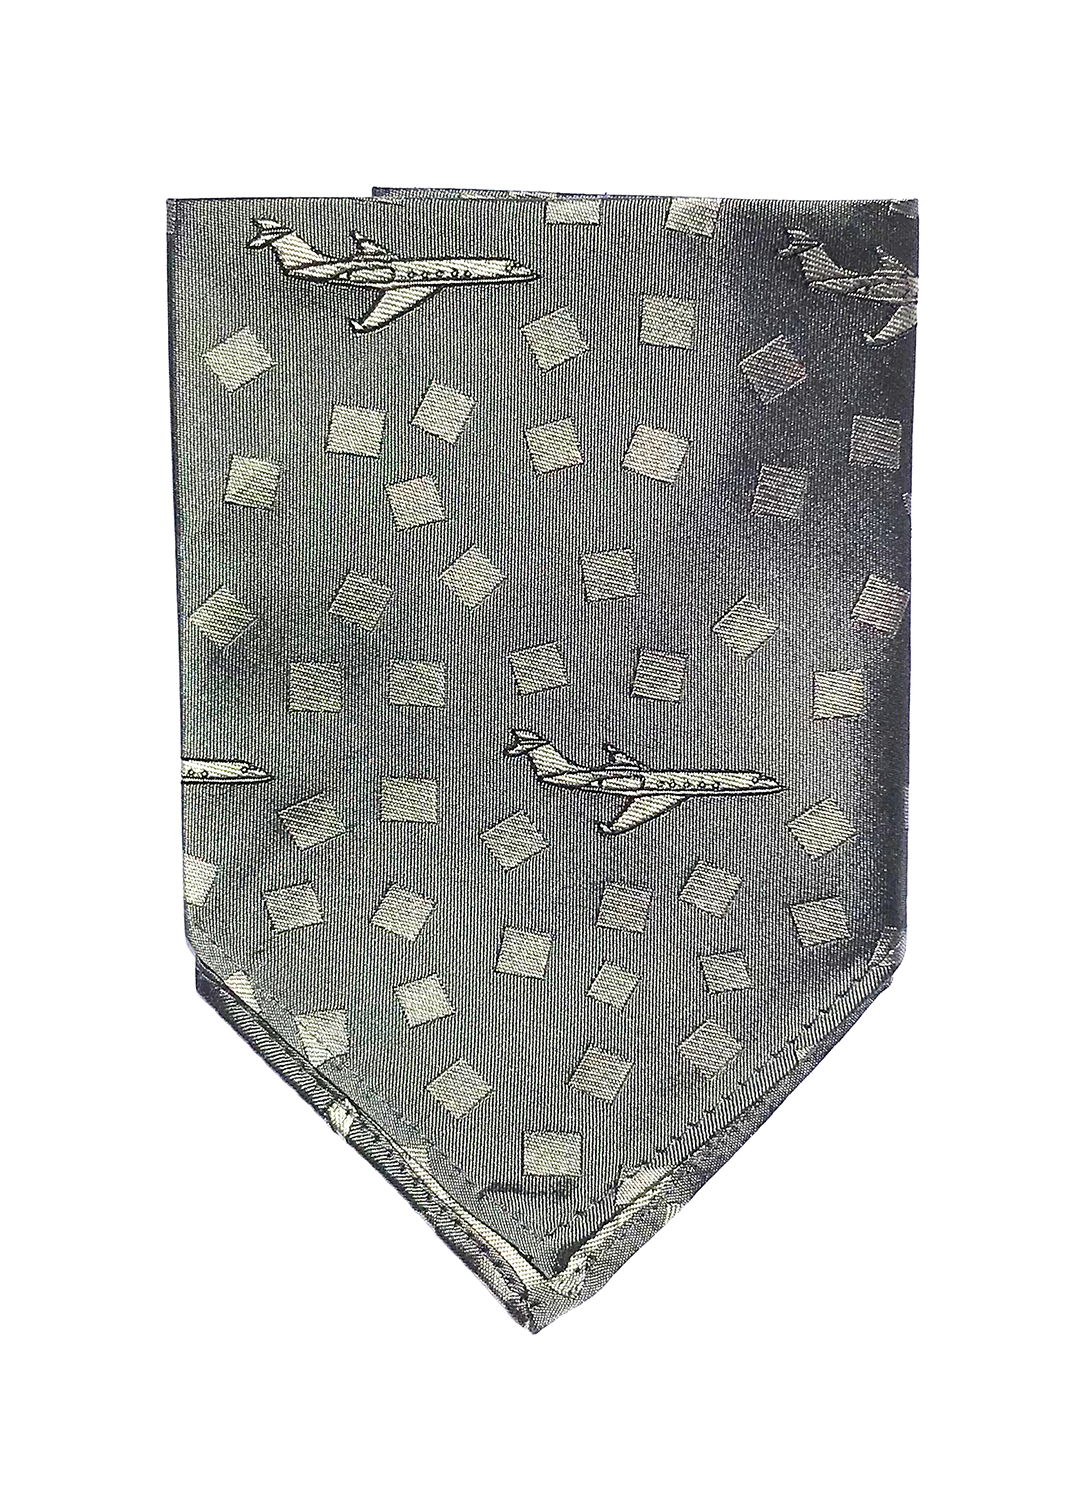 Gulfstream pocket square in iron and steel